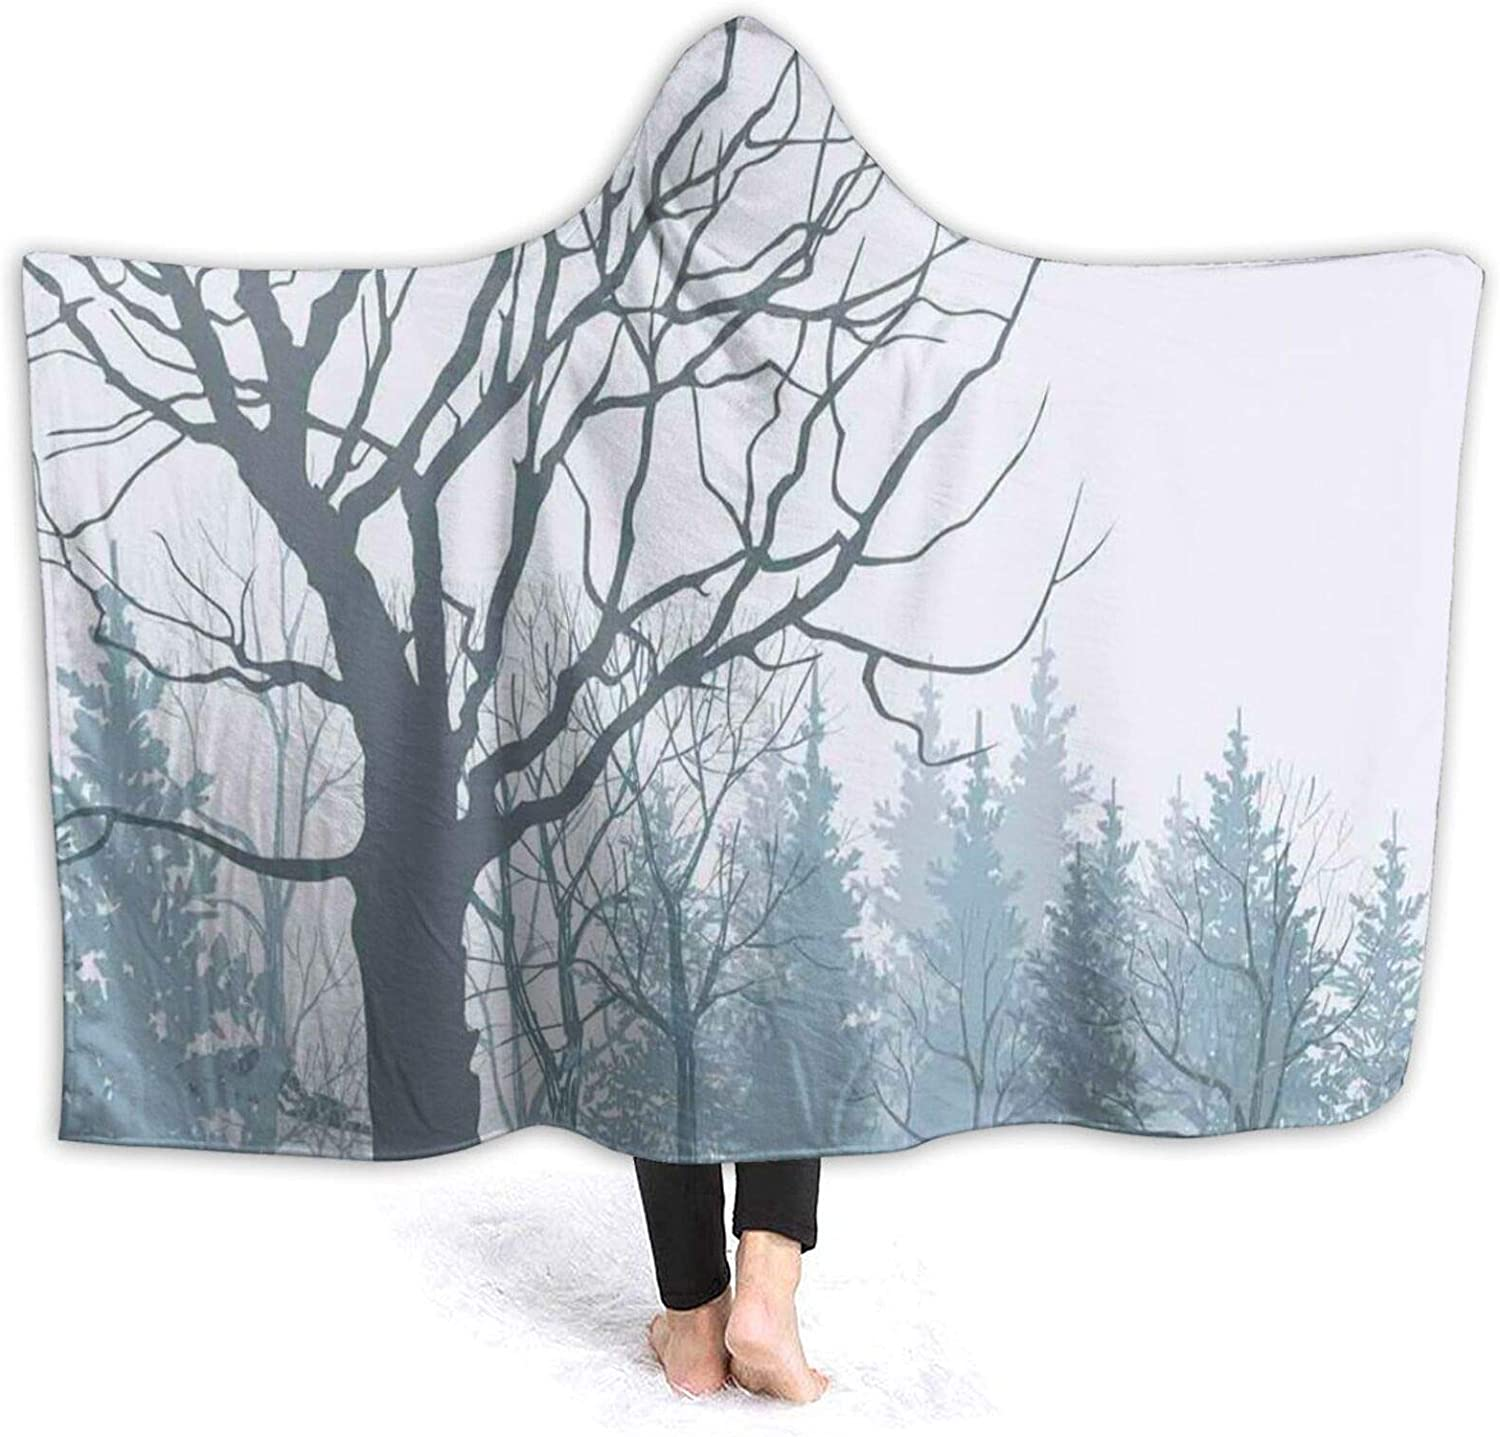 Hooded Blanket Anti-Pilling Flannel Winter Season Tree A W Popular brand Theme High material